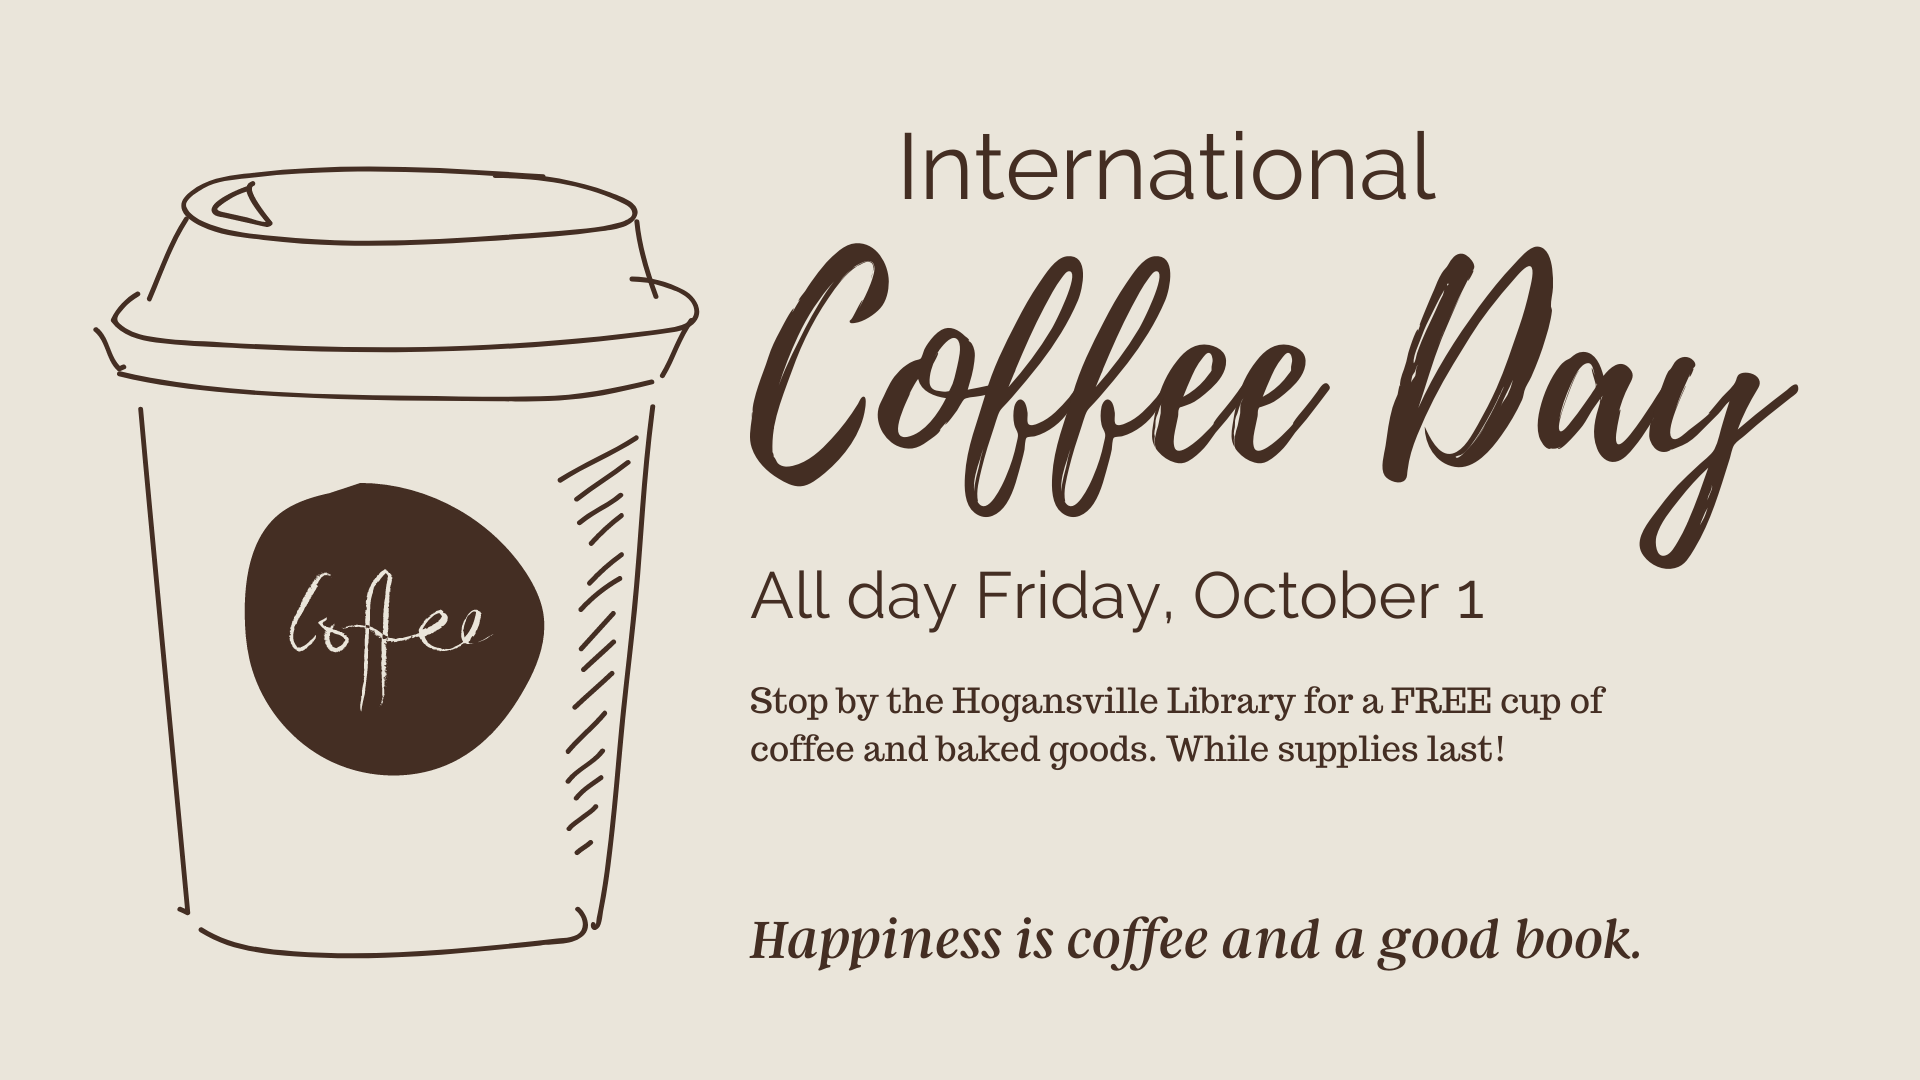 October 1st is International Coffee Day! Stop by the Hogansville Library for a hot cup of joe and donuts any time on Friday, October 1. Take home a stack of books or movies while you're here!